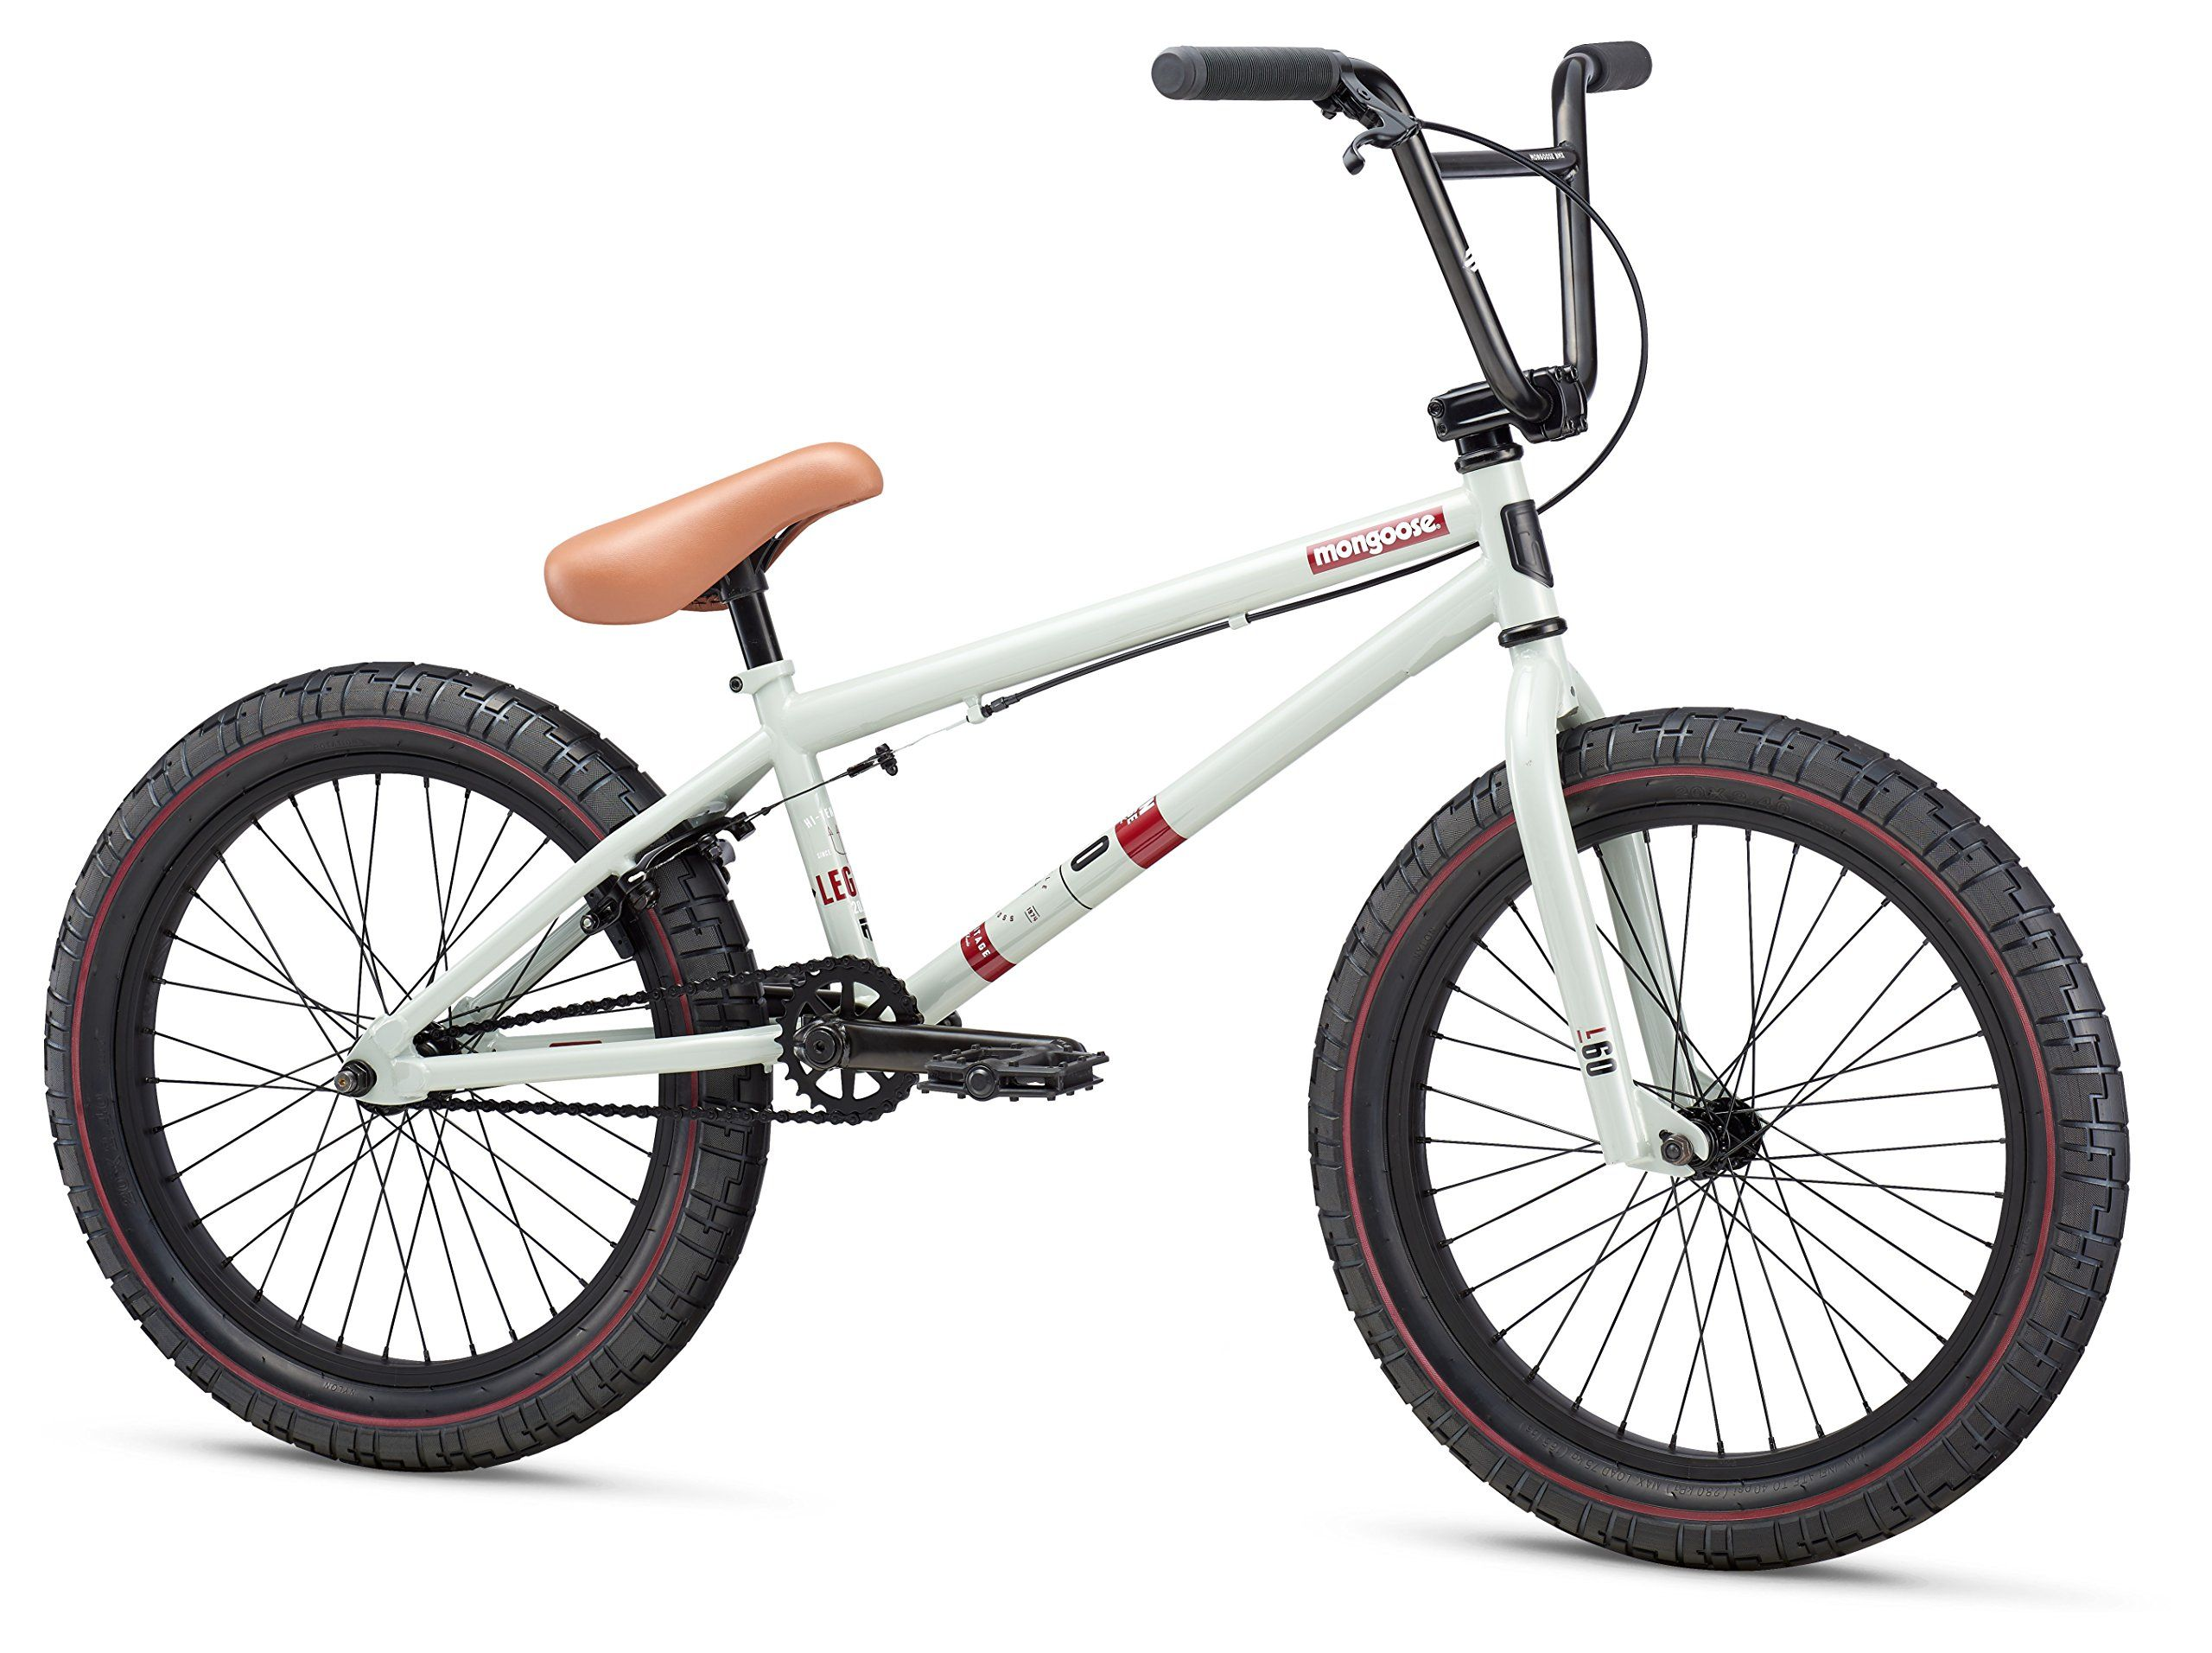 Mongoose Legion L60 20 Wheel Freestyle Bike Clay One Size Mongoose Hi Ten Bmx Steel Frame And Fork Is Ready For Action Bmx Bikes Mongoose Bmx Bmx Bike Shop